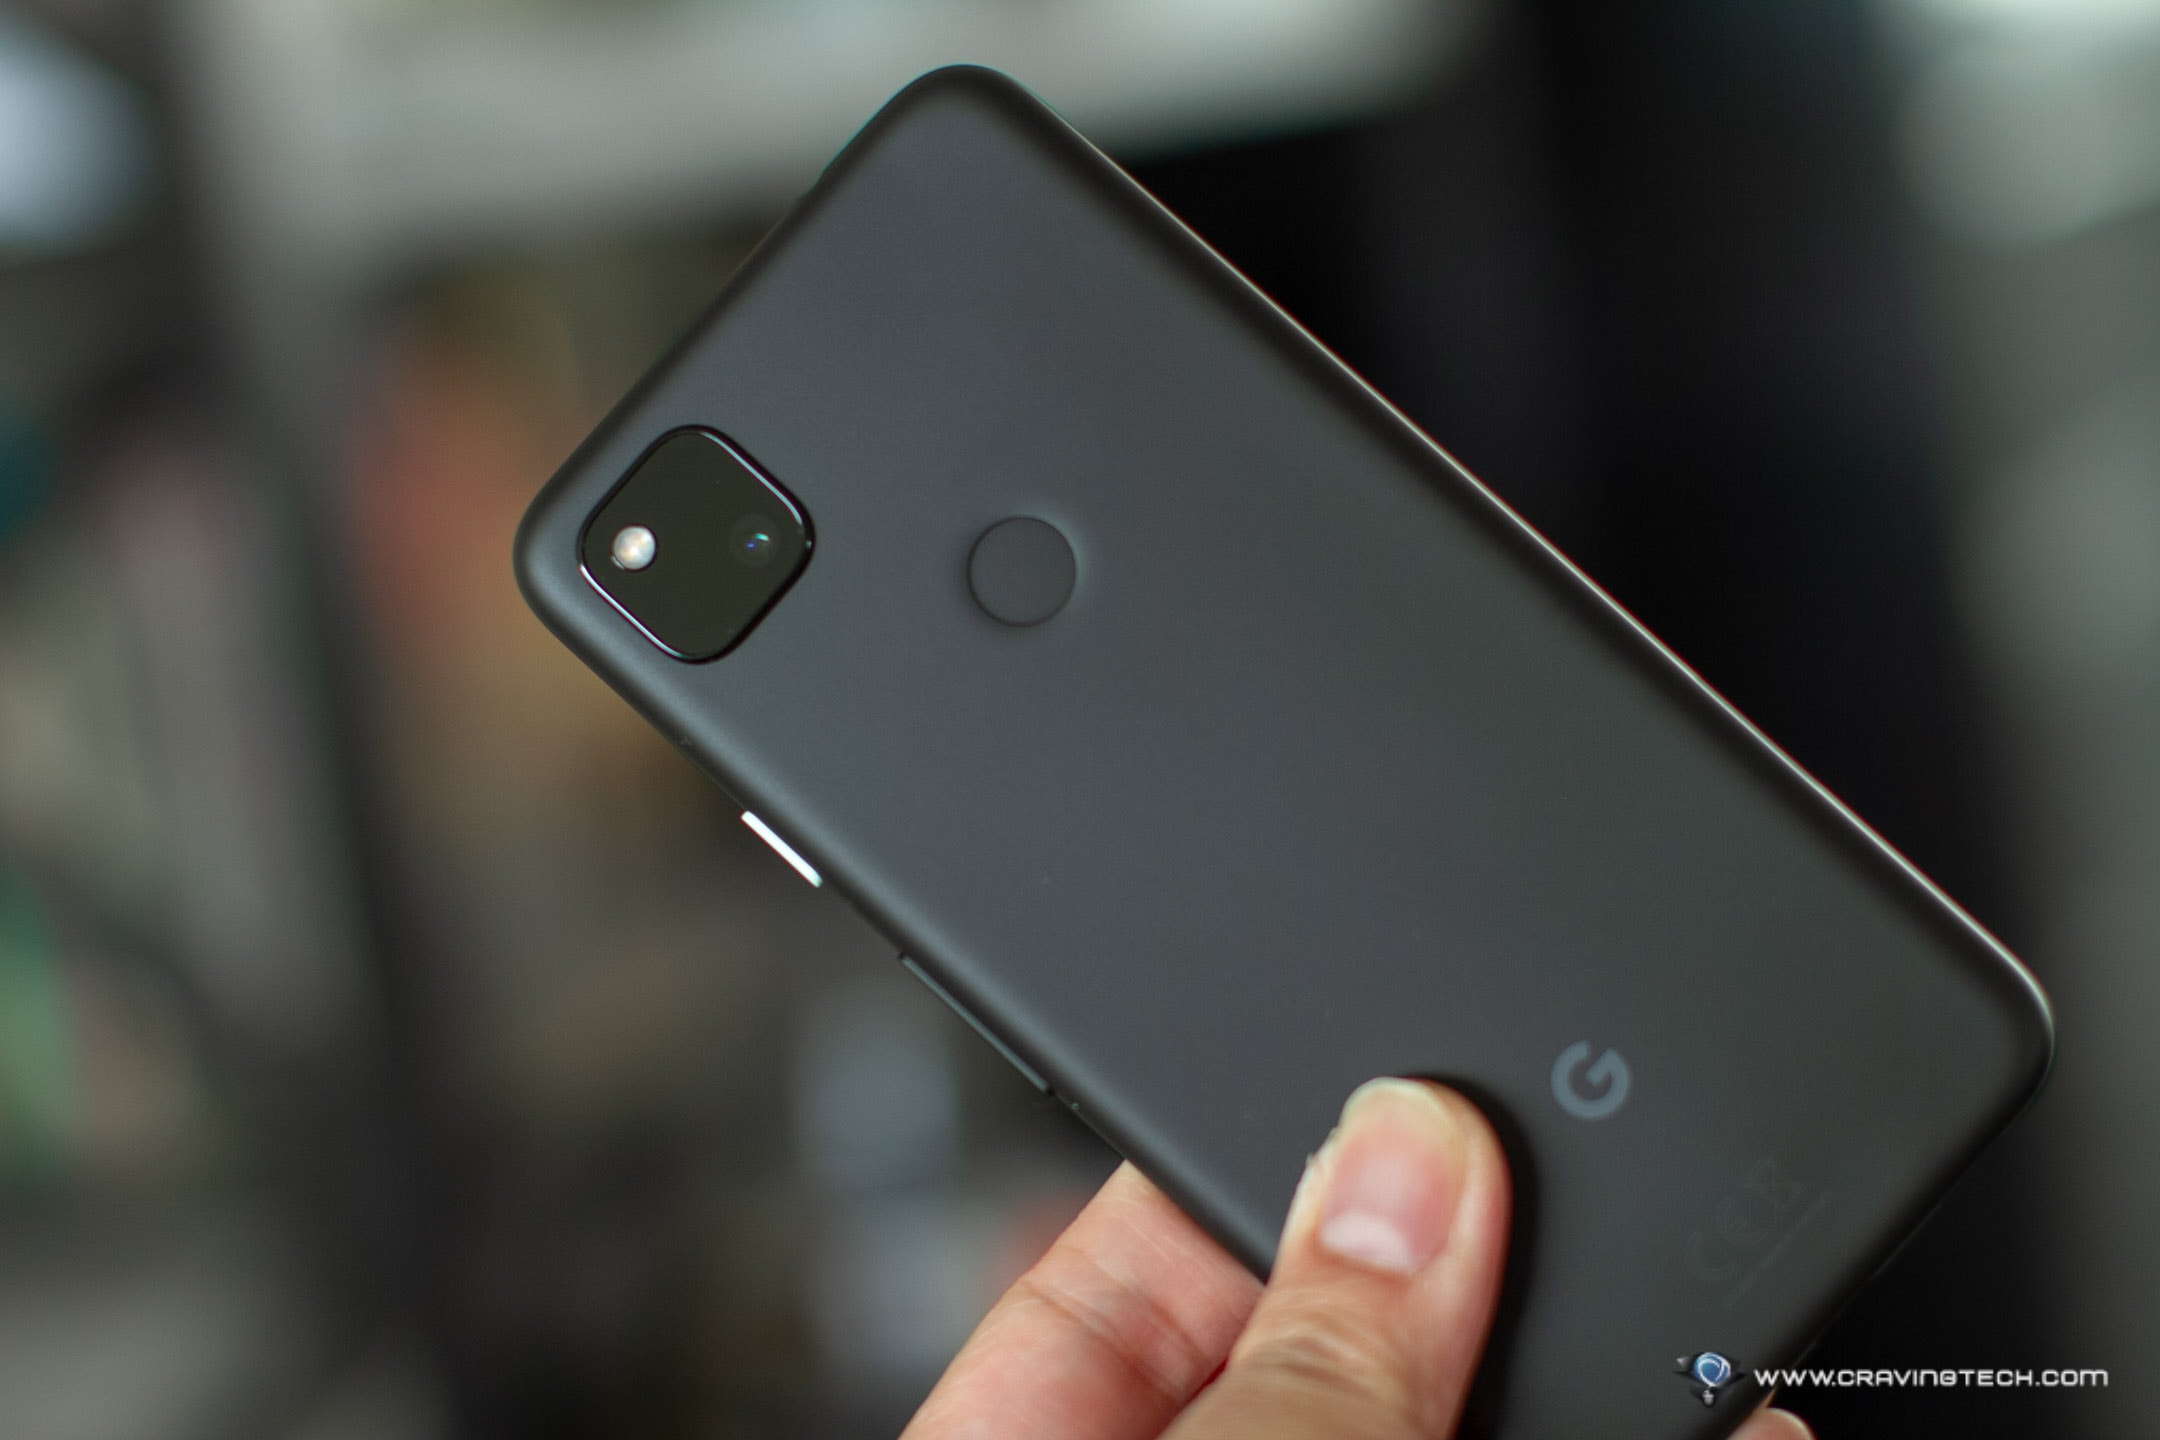 Google's best phone and best mid-range smartphone? – Google Pixel 4a Review